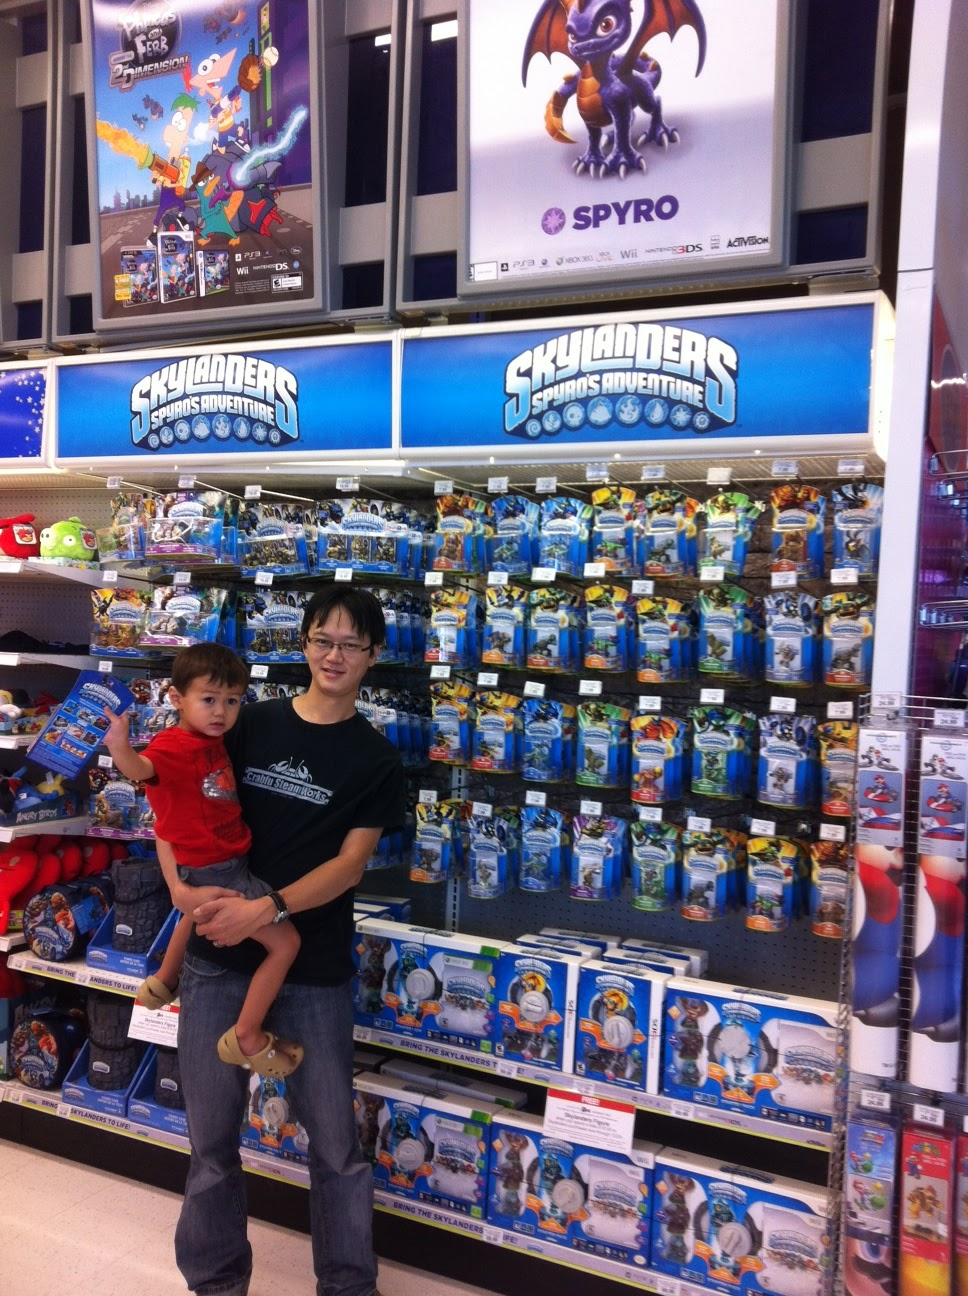 Me and my son at the local Toys R Us on Launch day look at all of